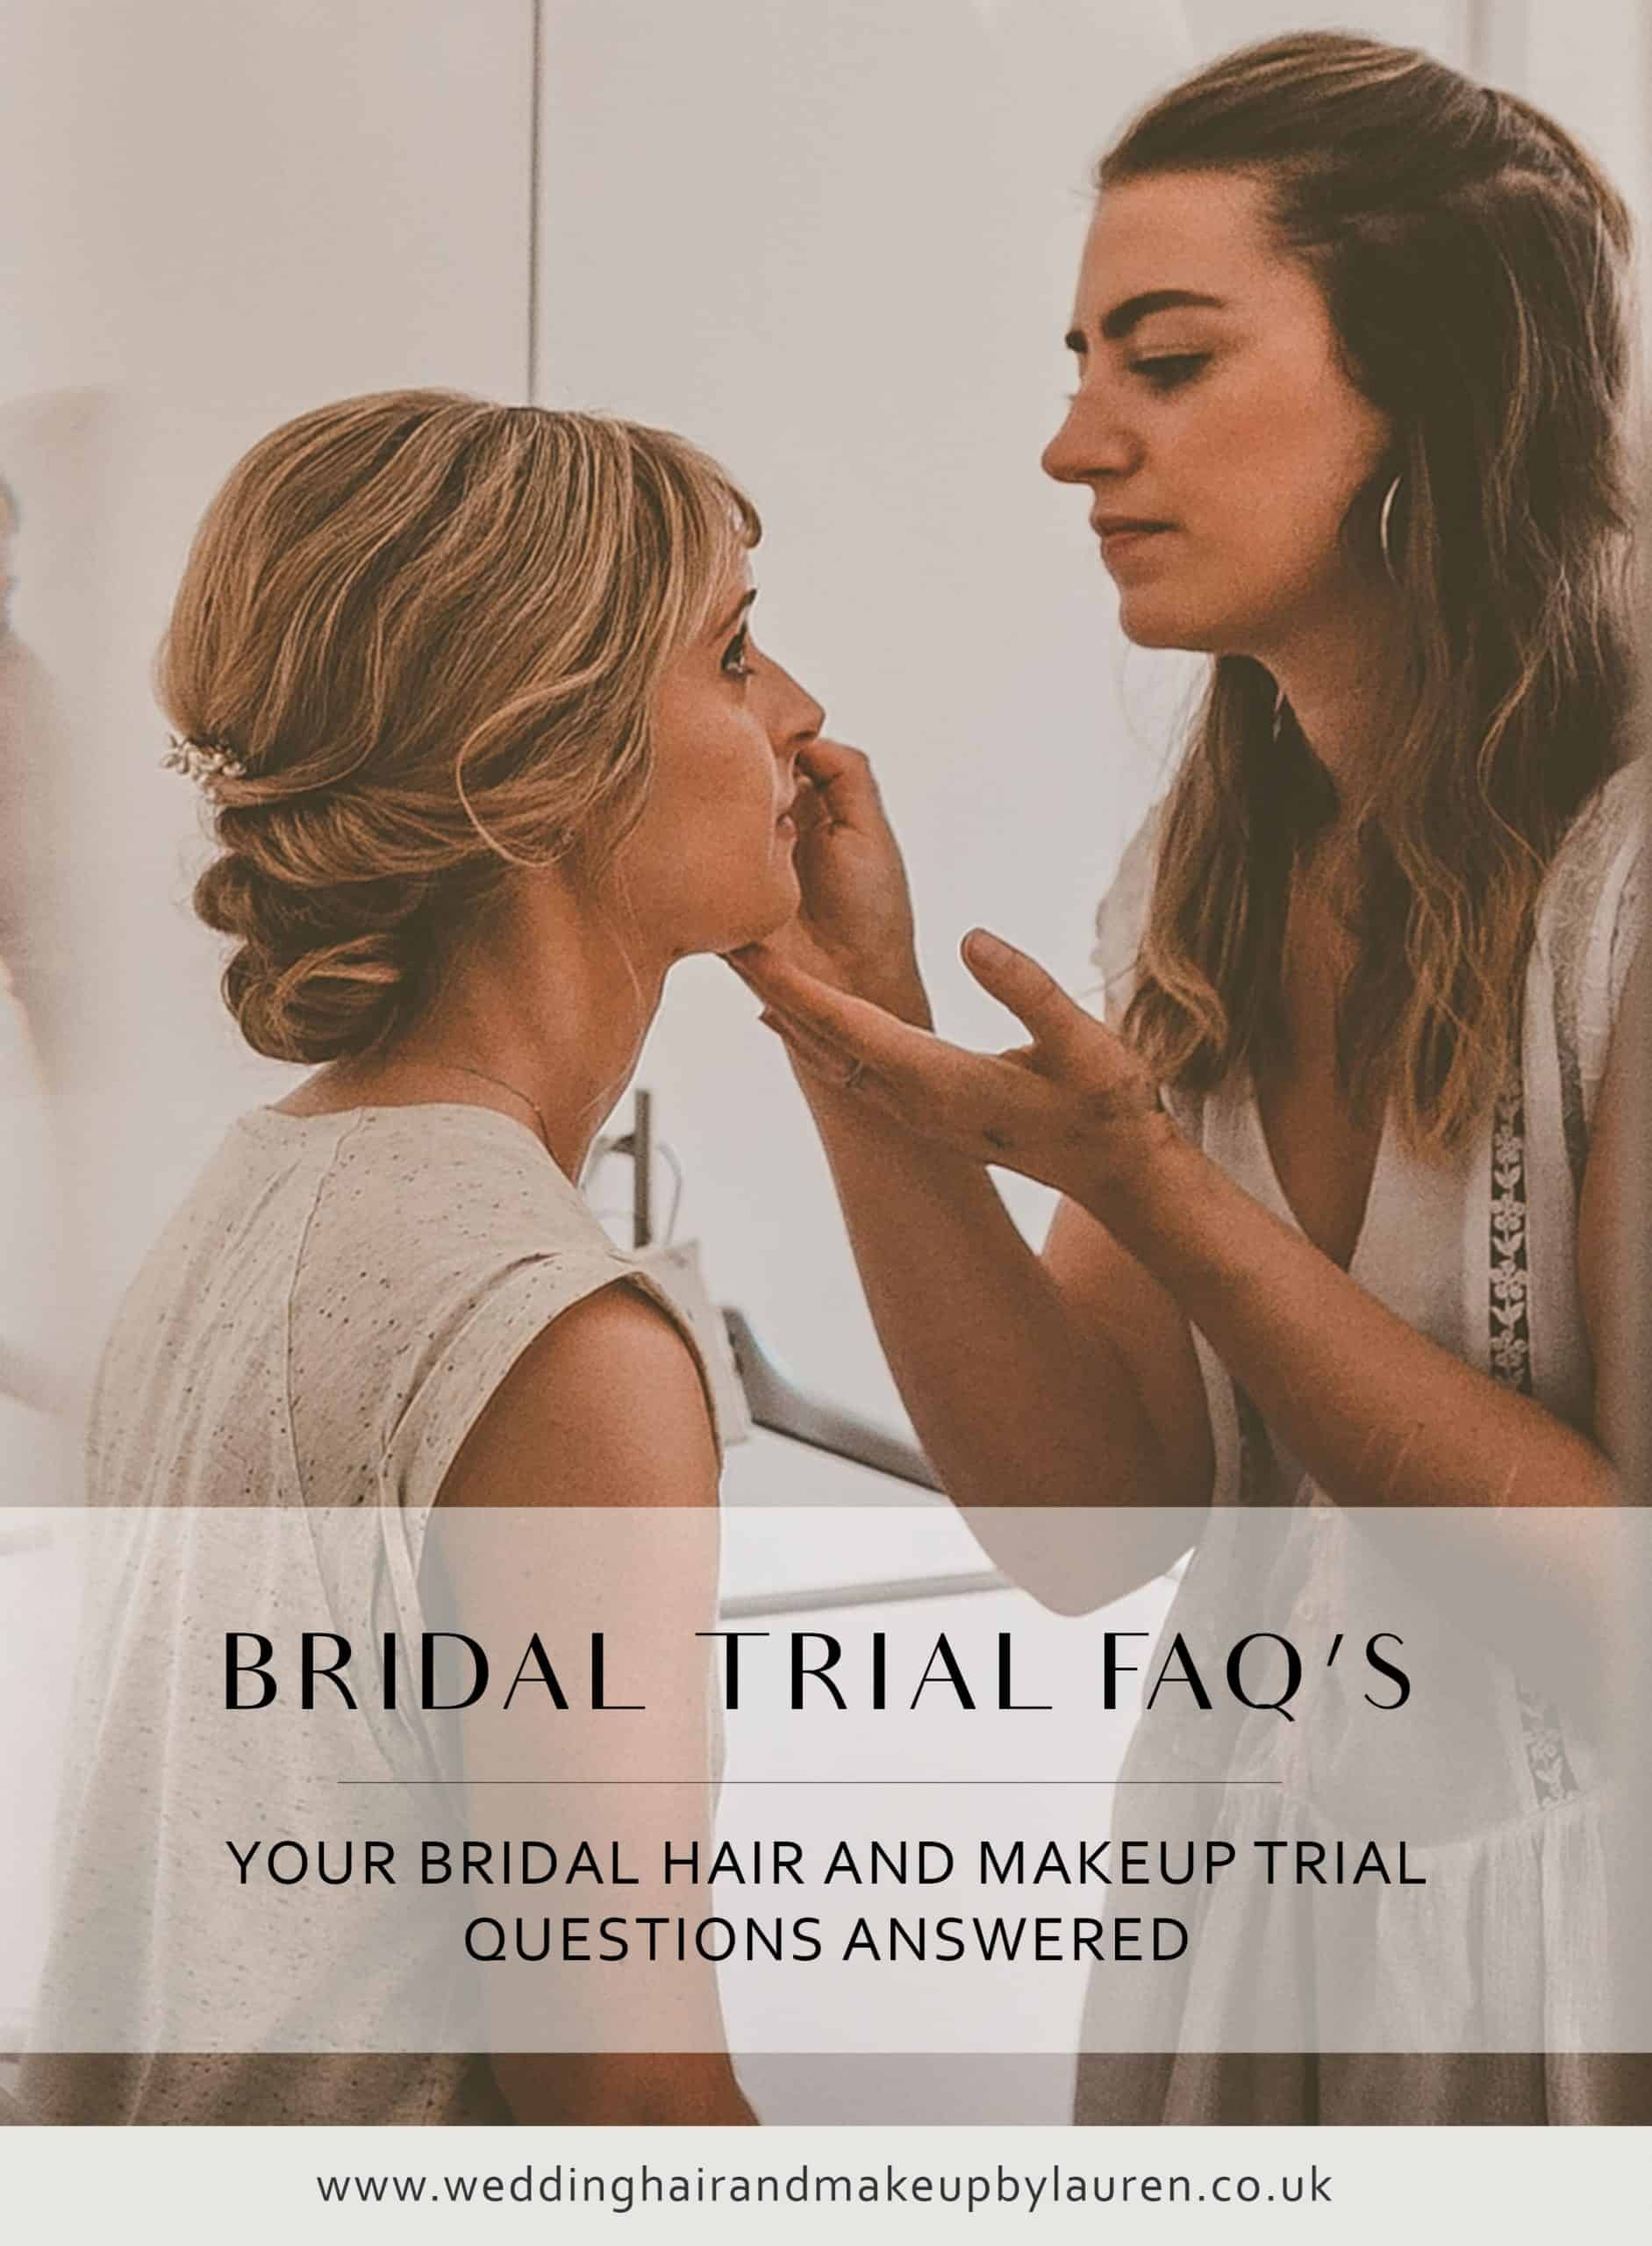 Your Bridal Hair And Makeup Trial Questions Answered